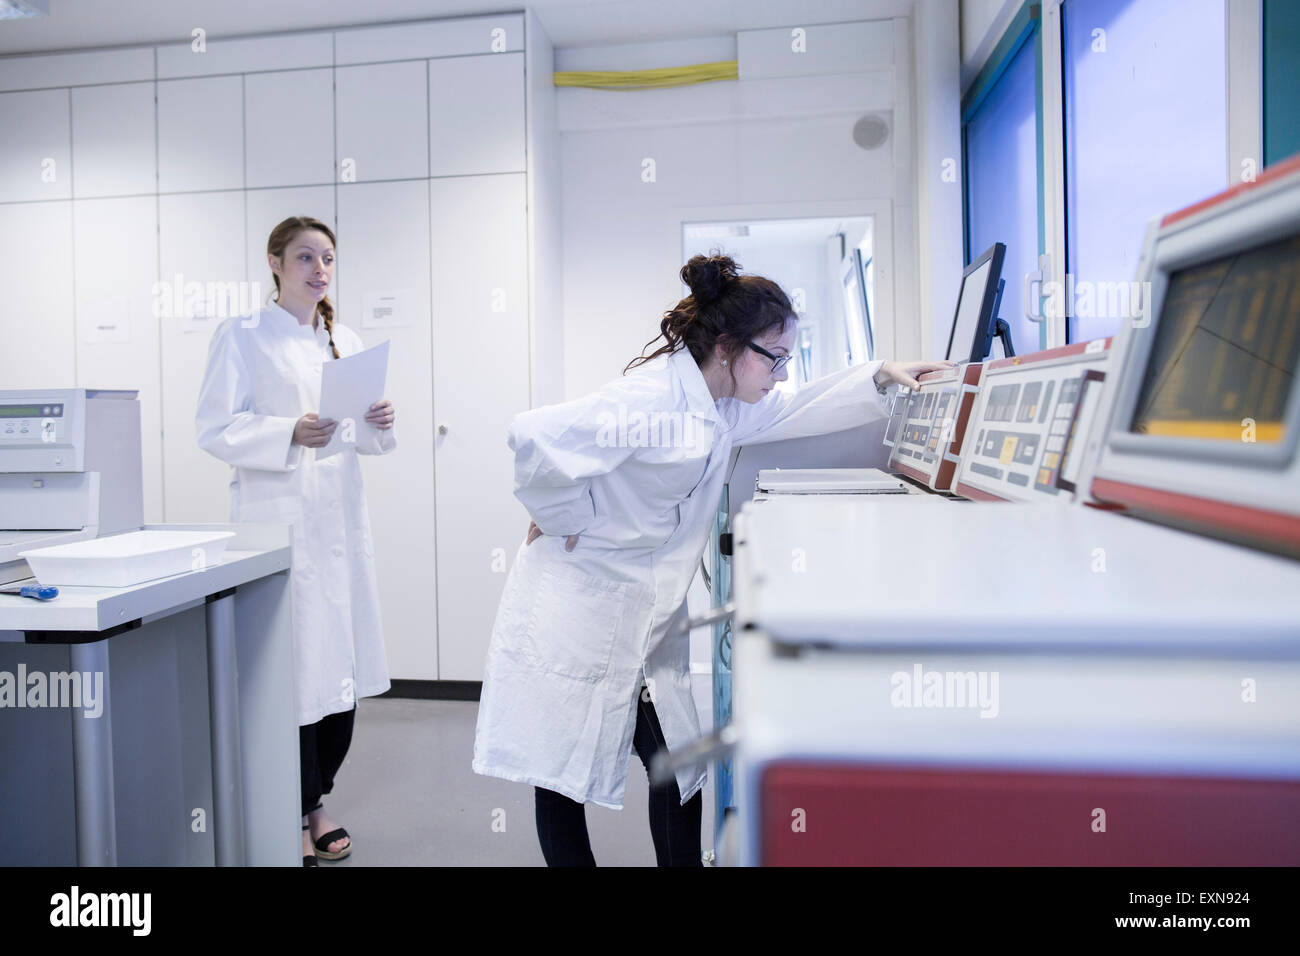 Laboratory assistant checking laboratory device - Stock Image